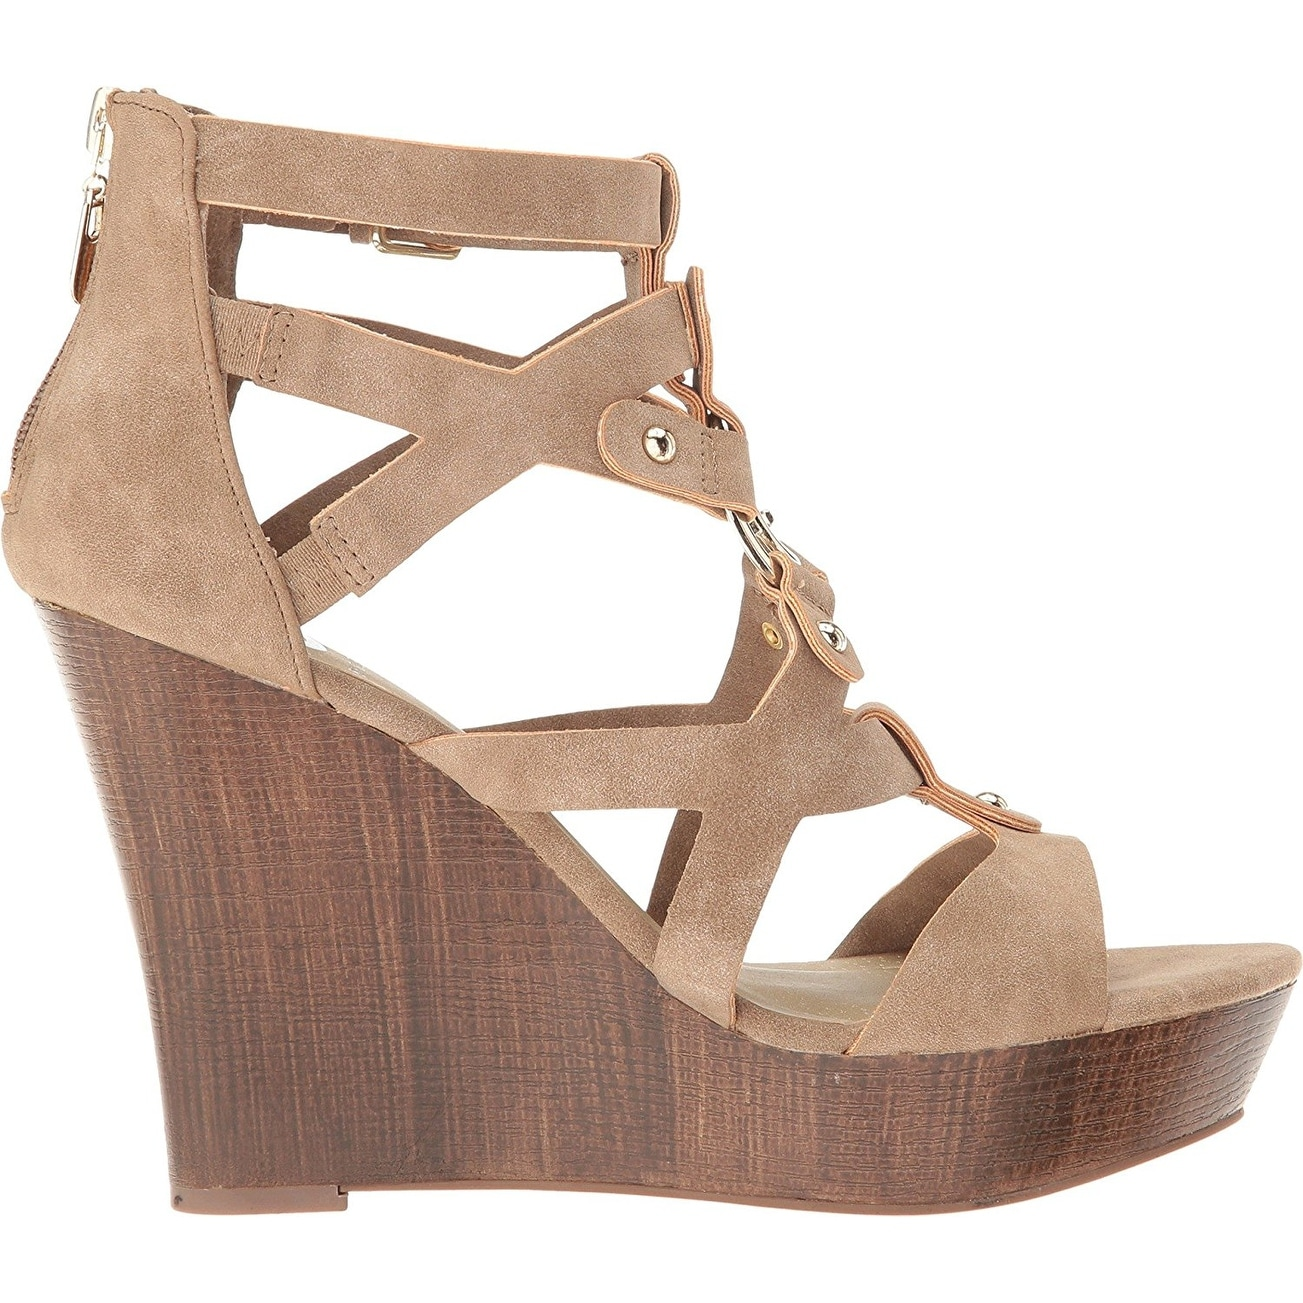 c929e04b76b Shop G by Guess Womens Dodge Open Toe Casual Platform Sandals - Free  Shipping On Orders Over  45 - Overstock - 17637059